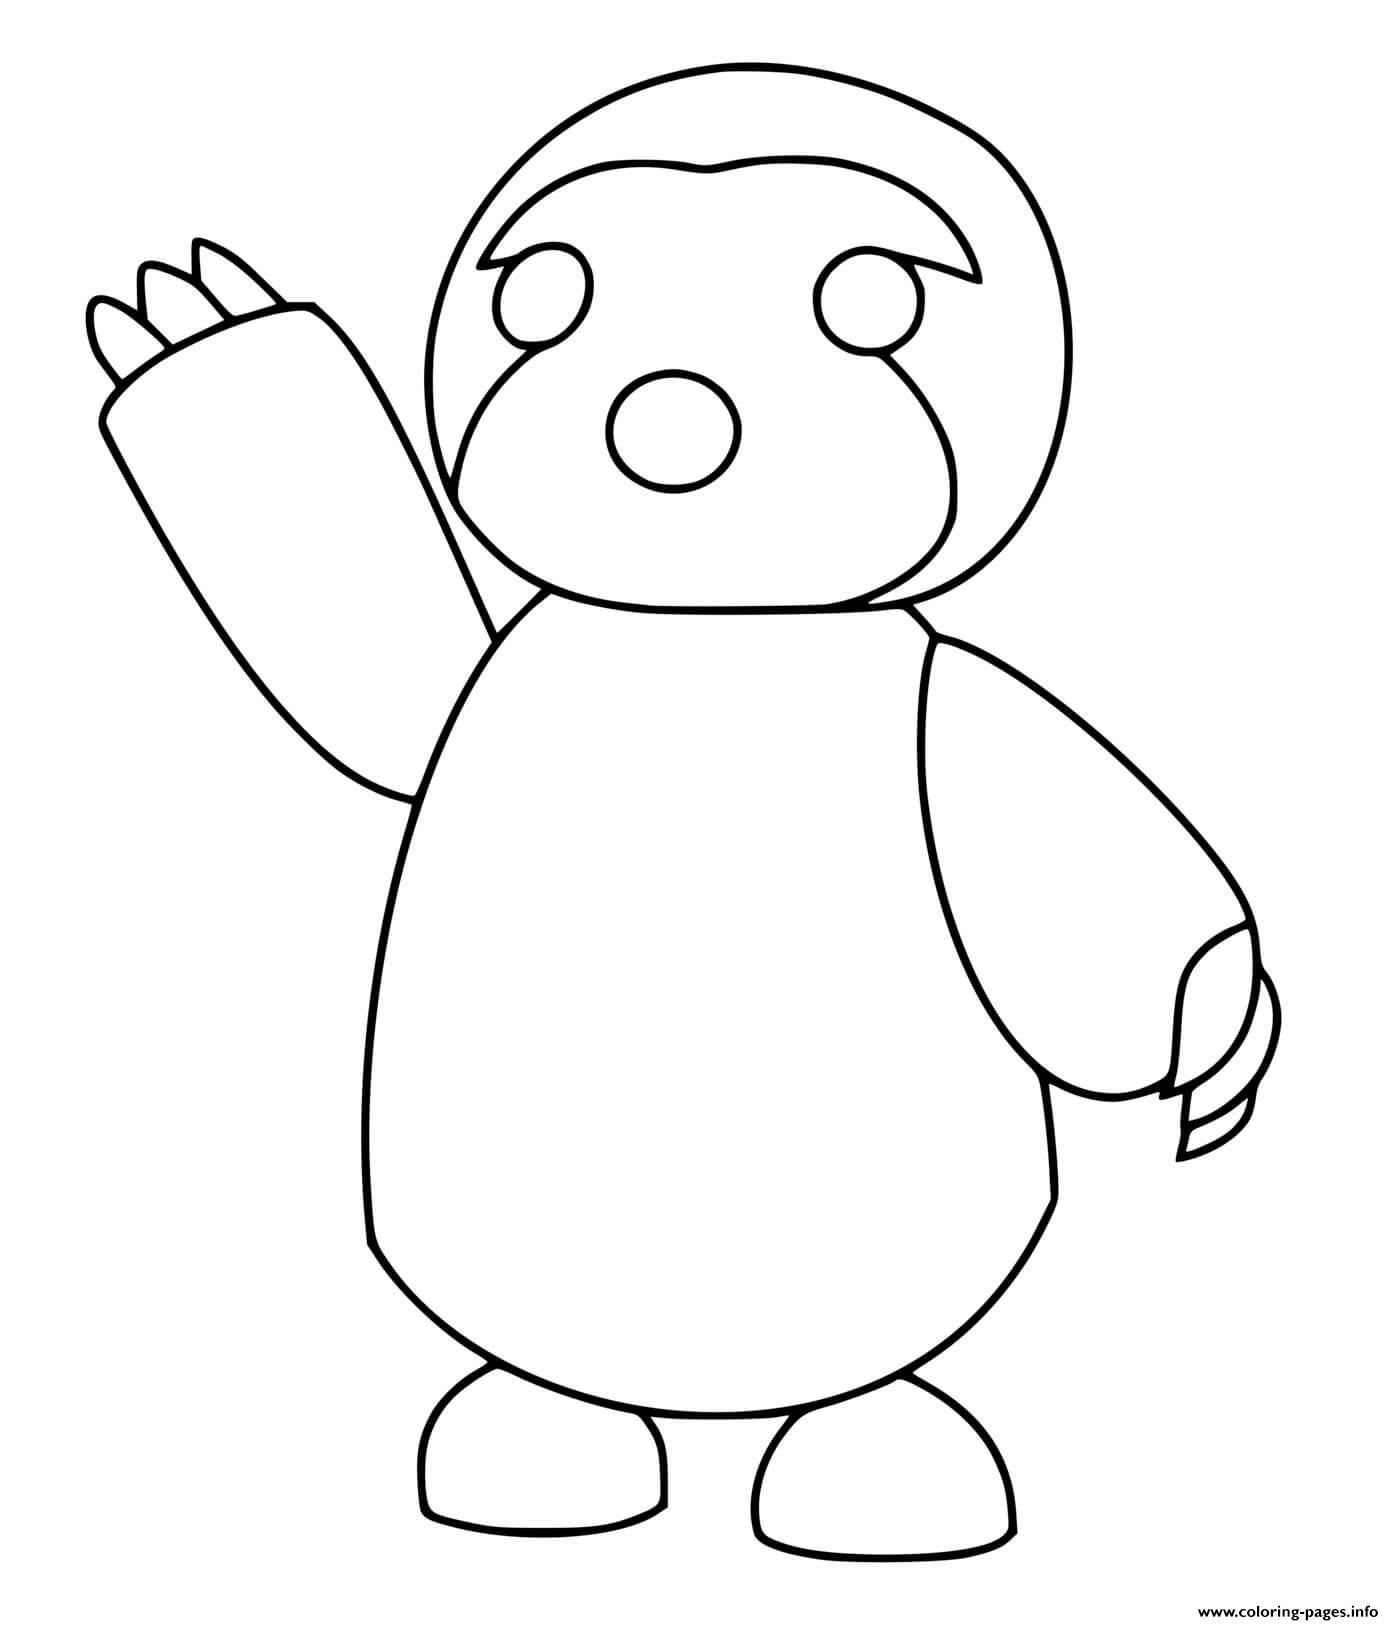 Roblox Adopt Me Sloth Coloring Pages Printable